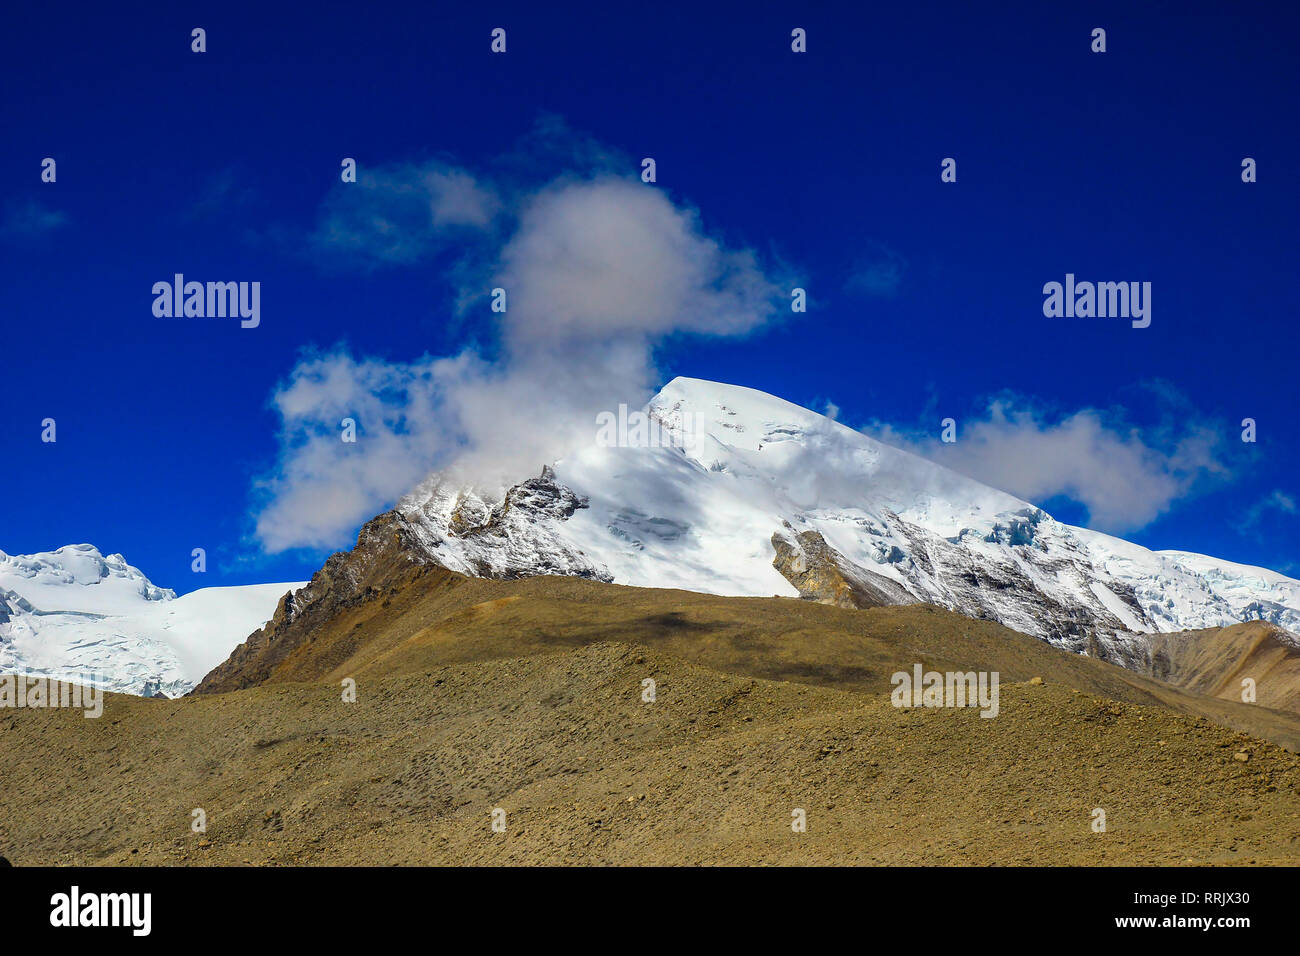 Landscape of deep blue sky and ice capped peaks of himalayan mountains with white clouds during day time - Stock Image